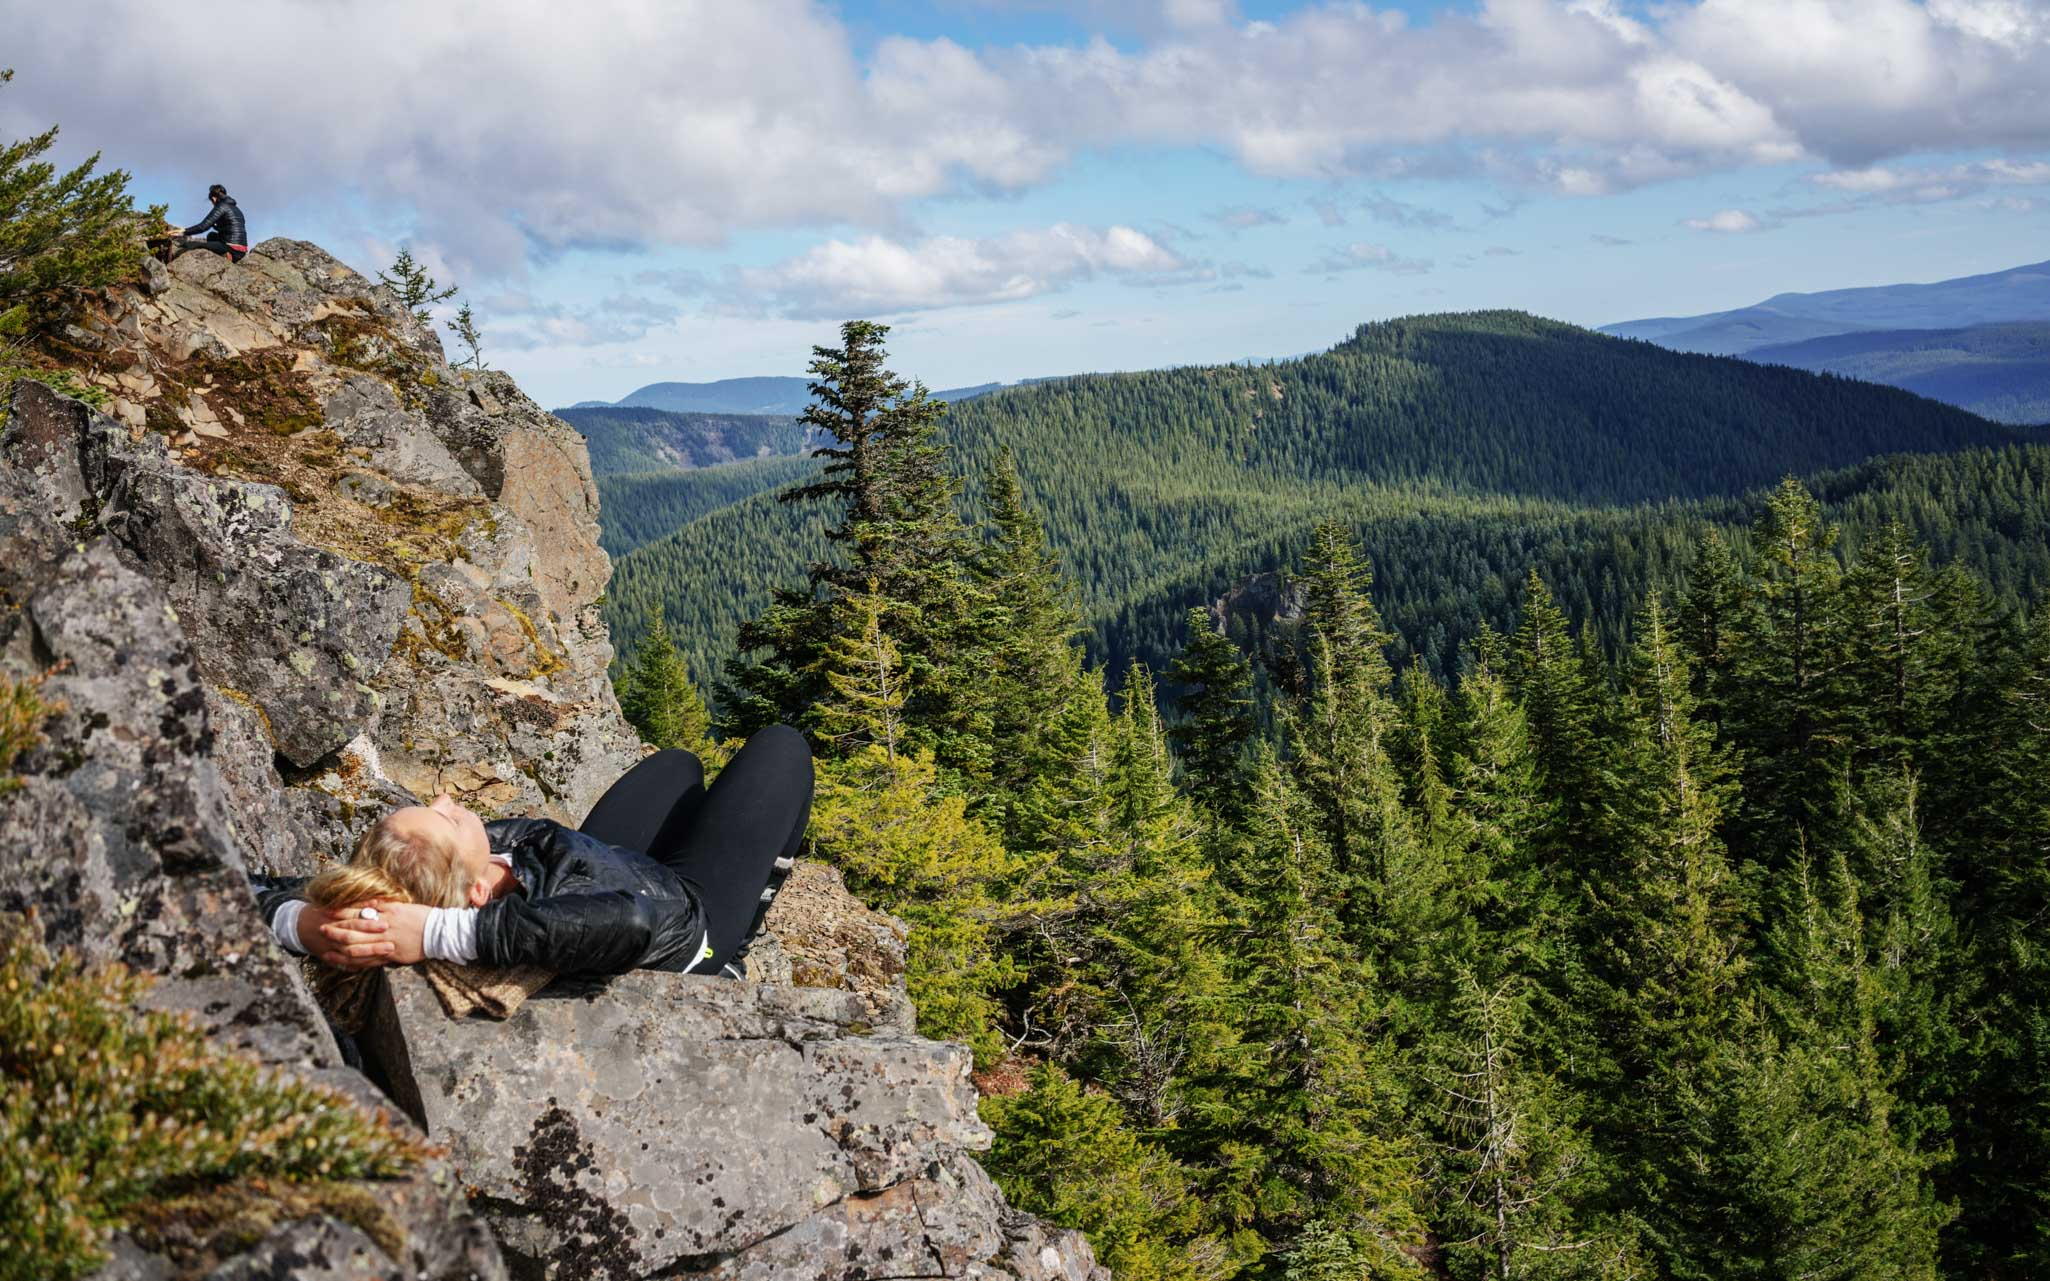 Taking a nap in the Mt Hood National Forest